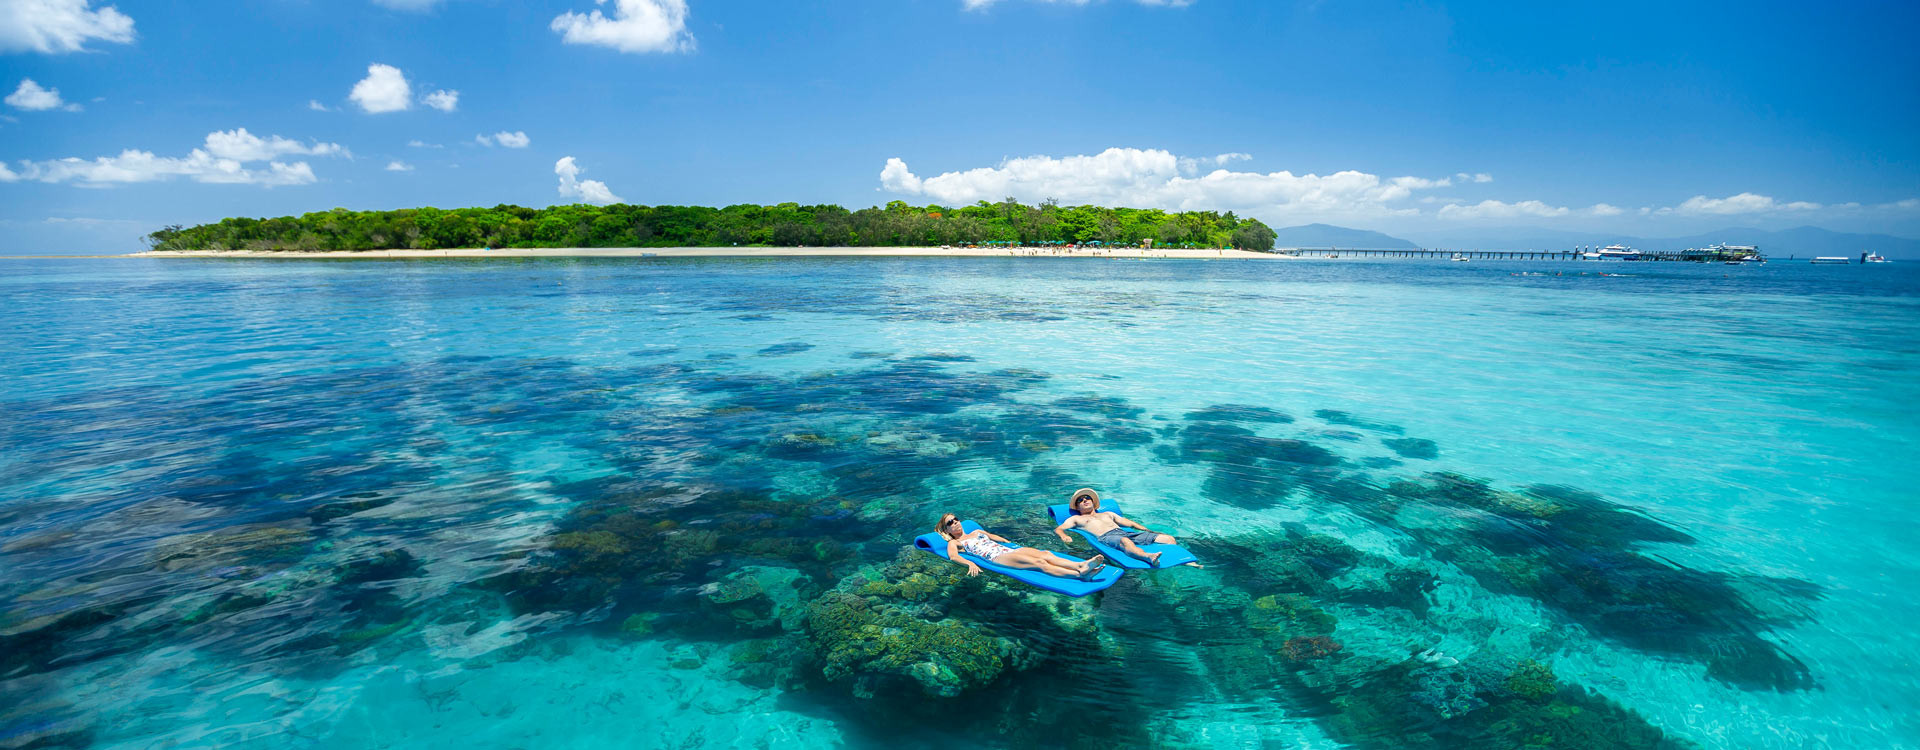 Things to do in Cairns visit Green Island